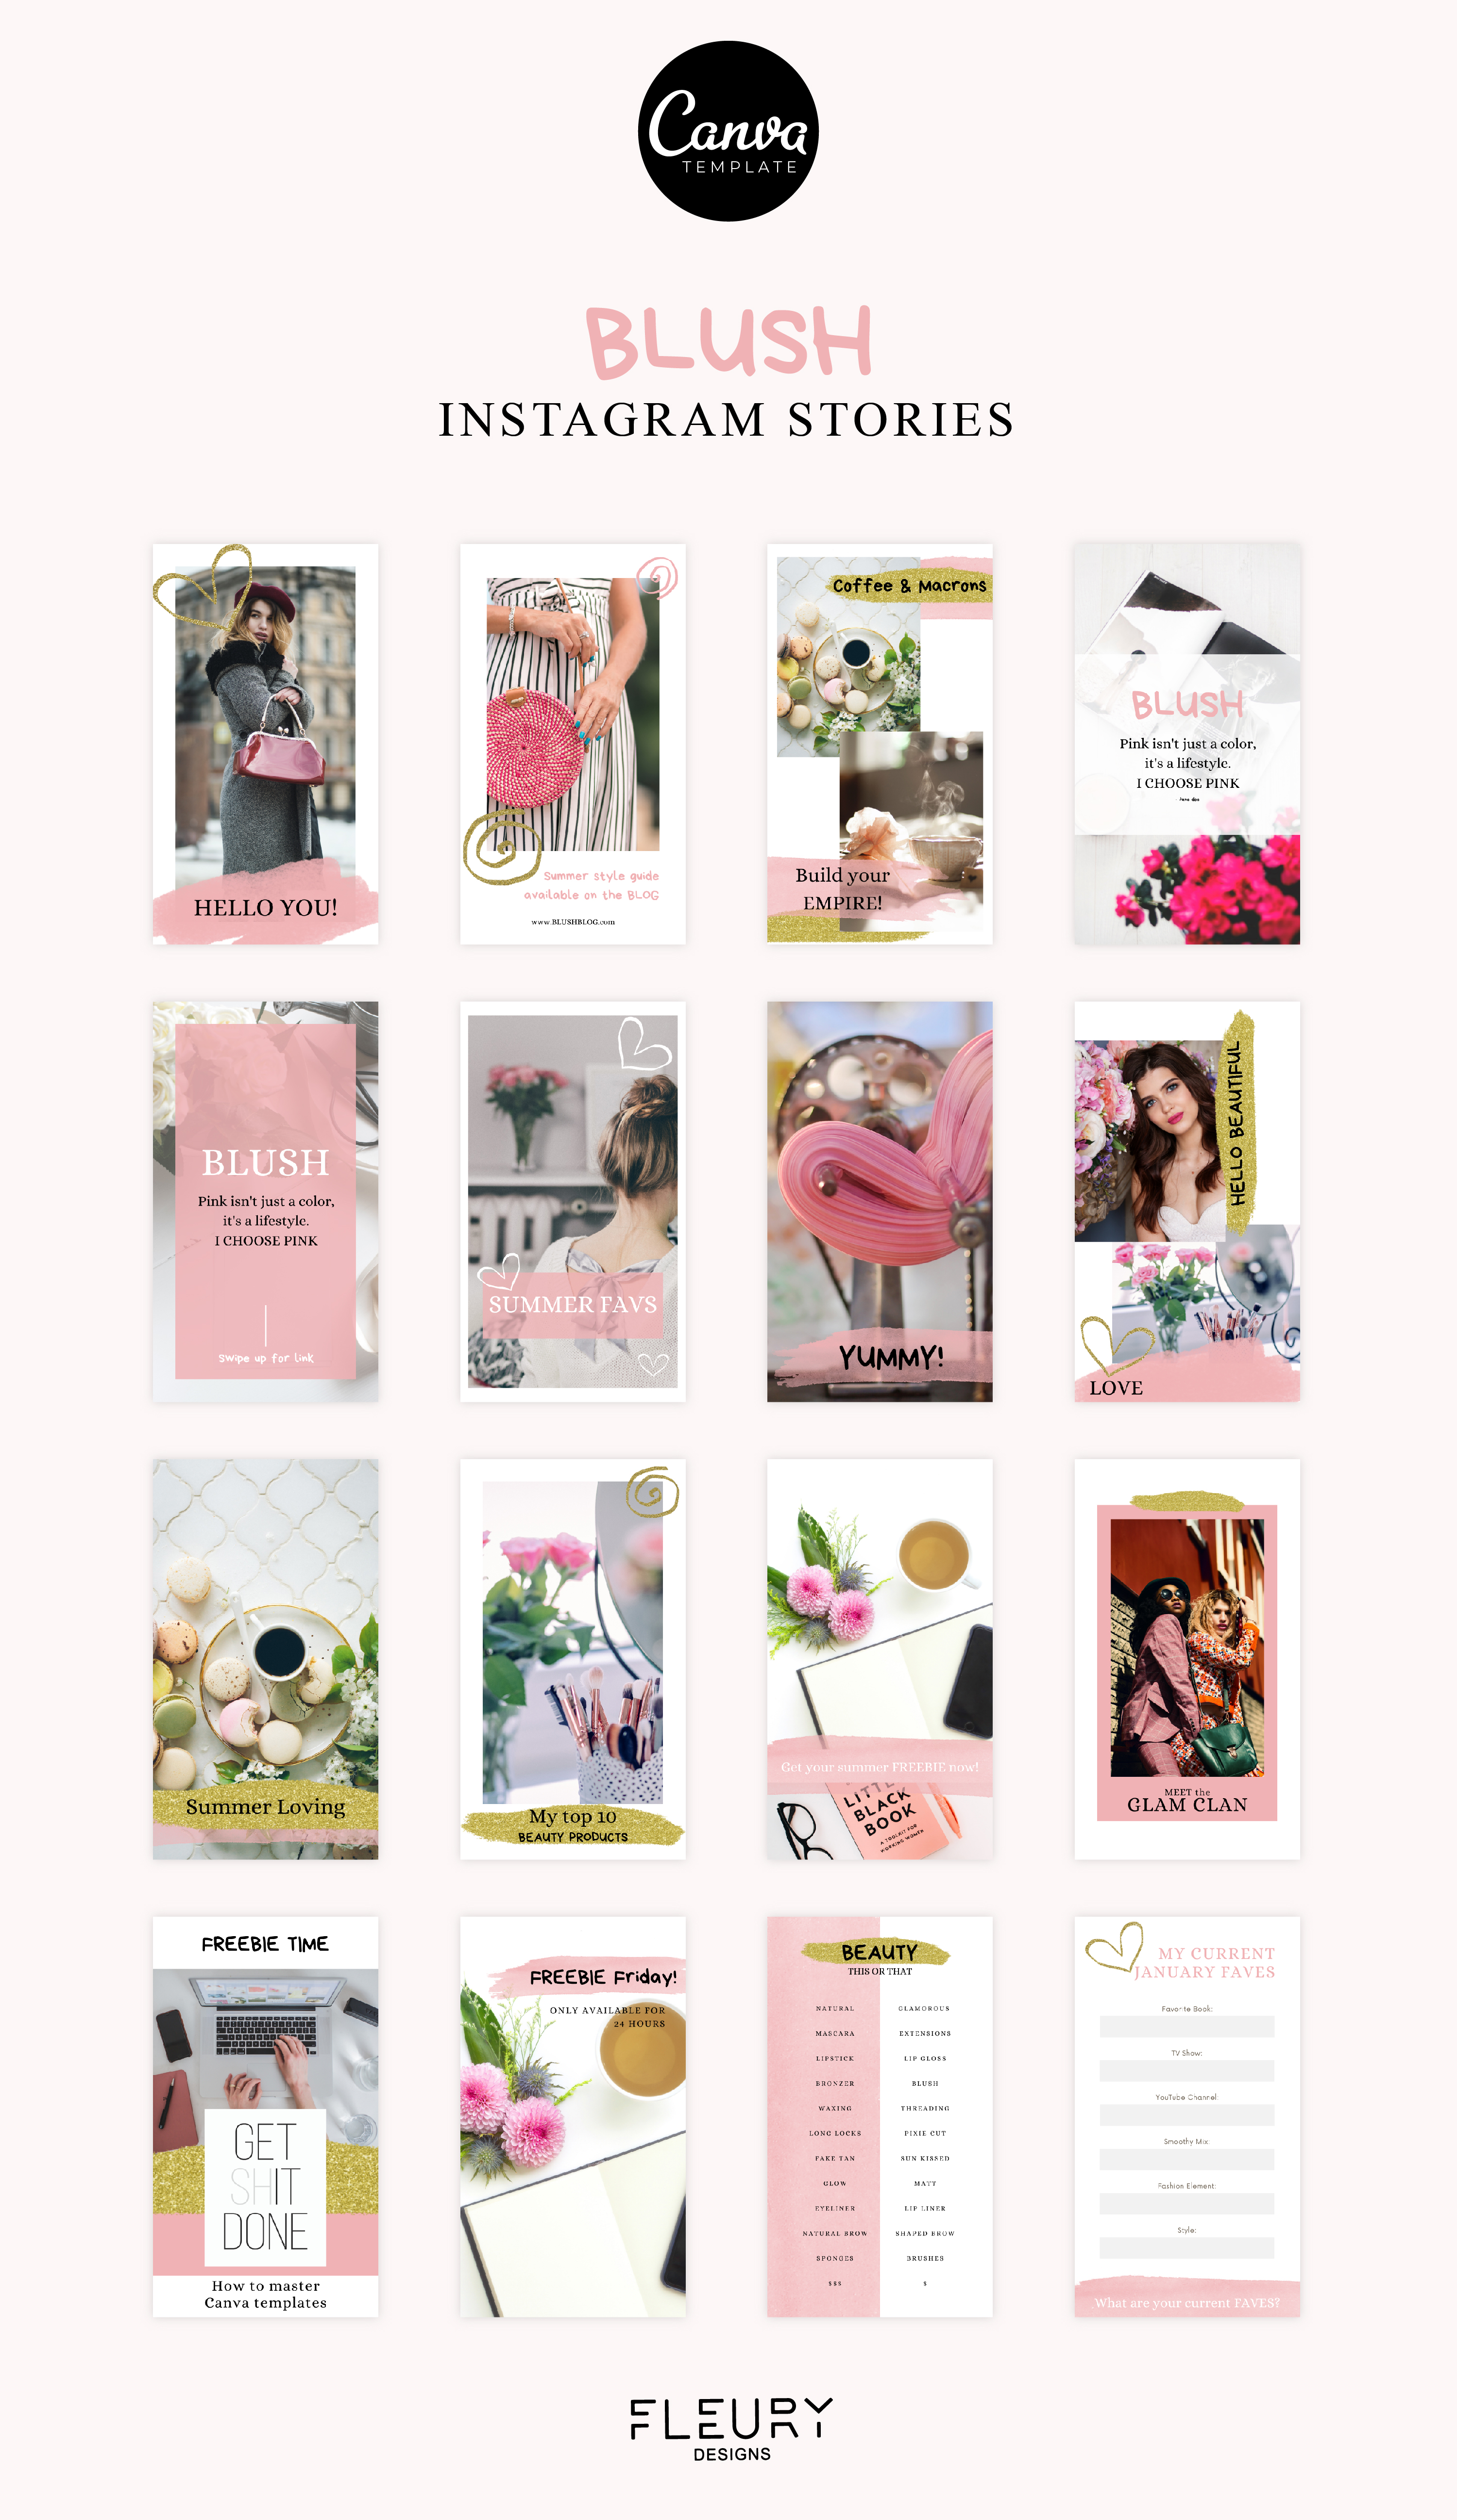 Instagram Story Canva Template - Blush example image 4